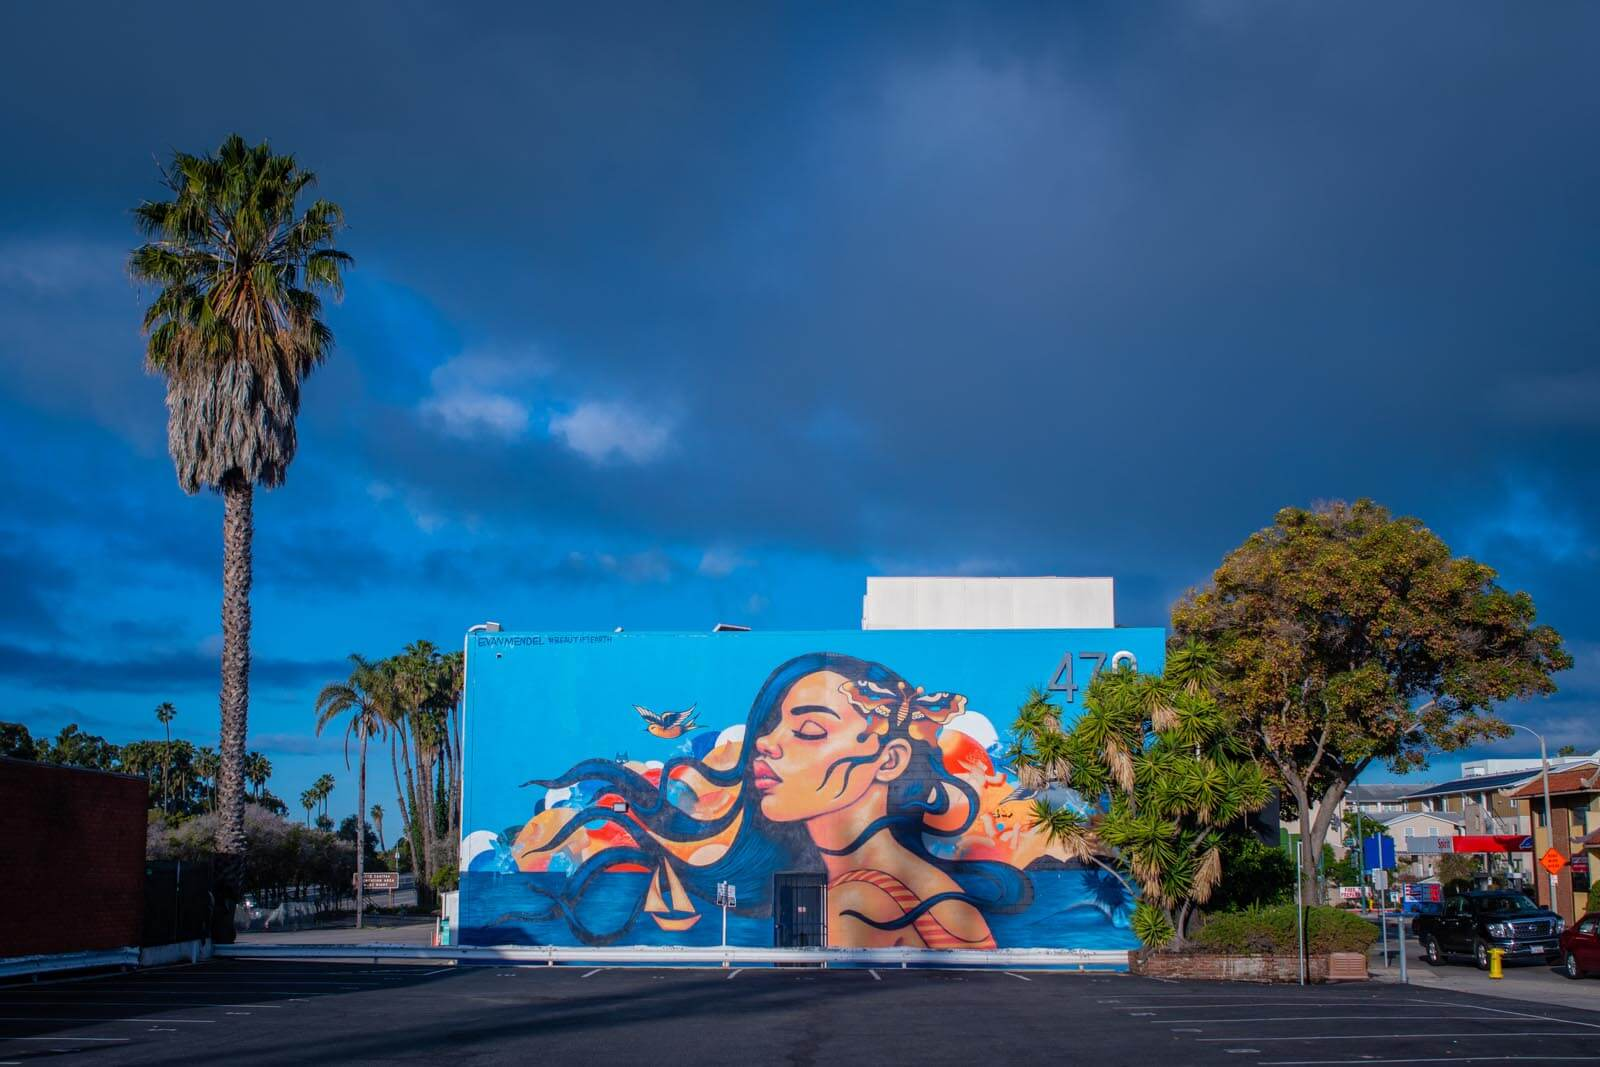 gorgeous mural in downtown Ventura